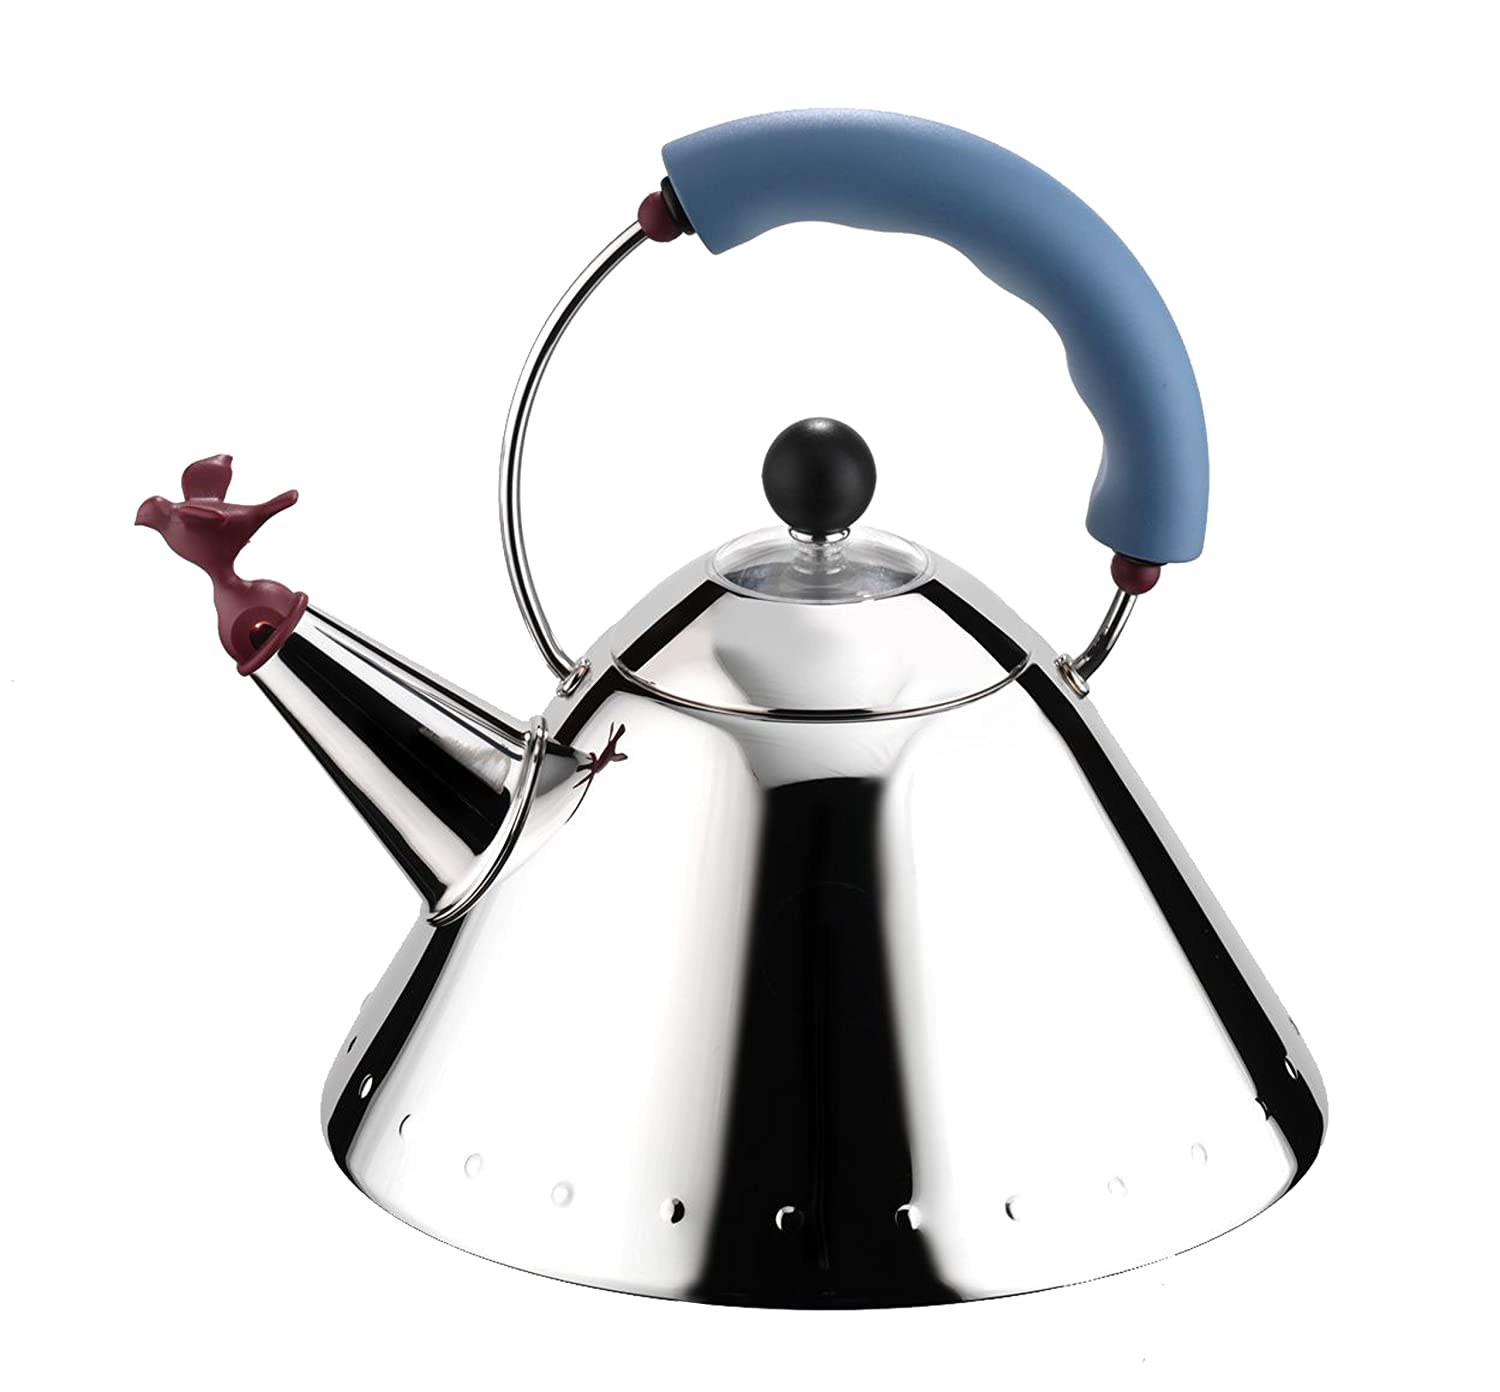 buy alessi michael graves kettle with bird whistle blue handle  - buy alessi michael graves kettle with bird whistle blue handle online atlow prices in india  amazonin